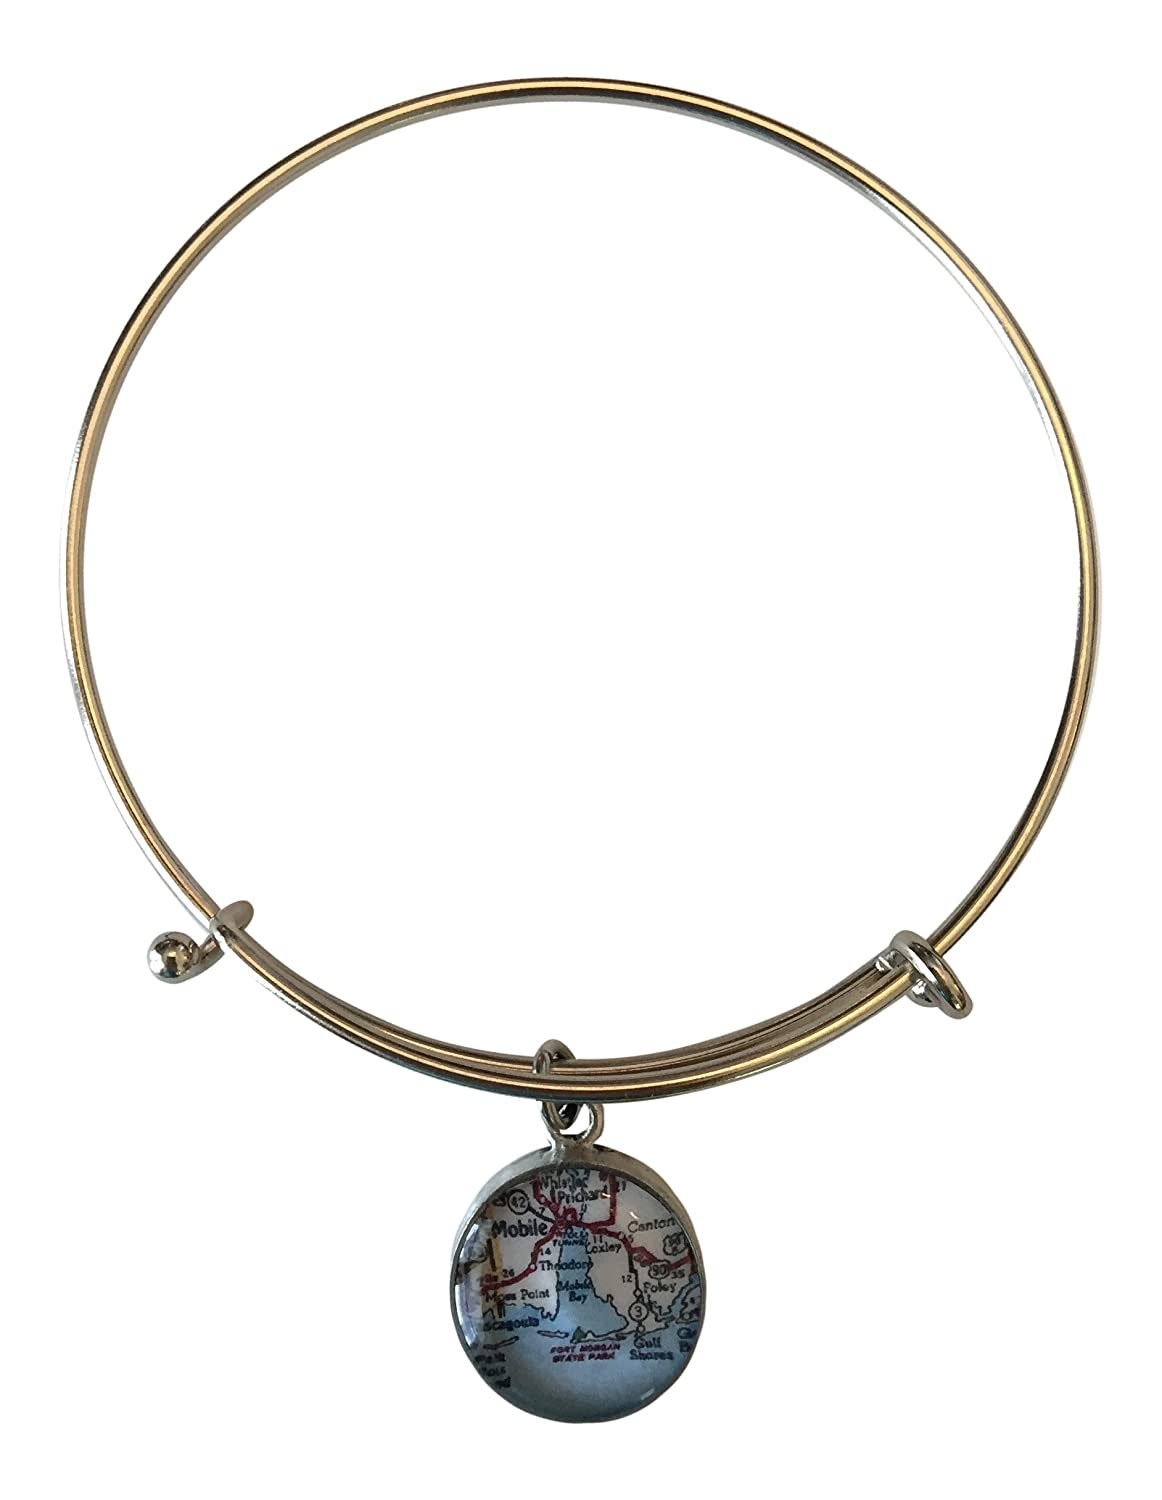 Mobile Bay Adjustable Bangle Bracelet Pewter Toned with /¾ Inch Charm Map of the Alabama Gulf Coast Area